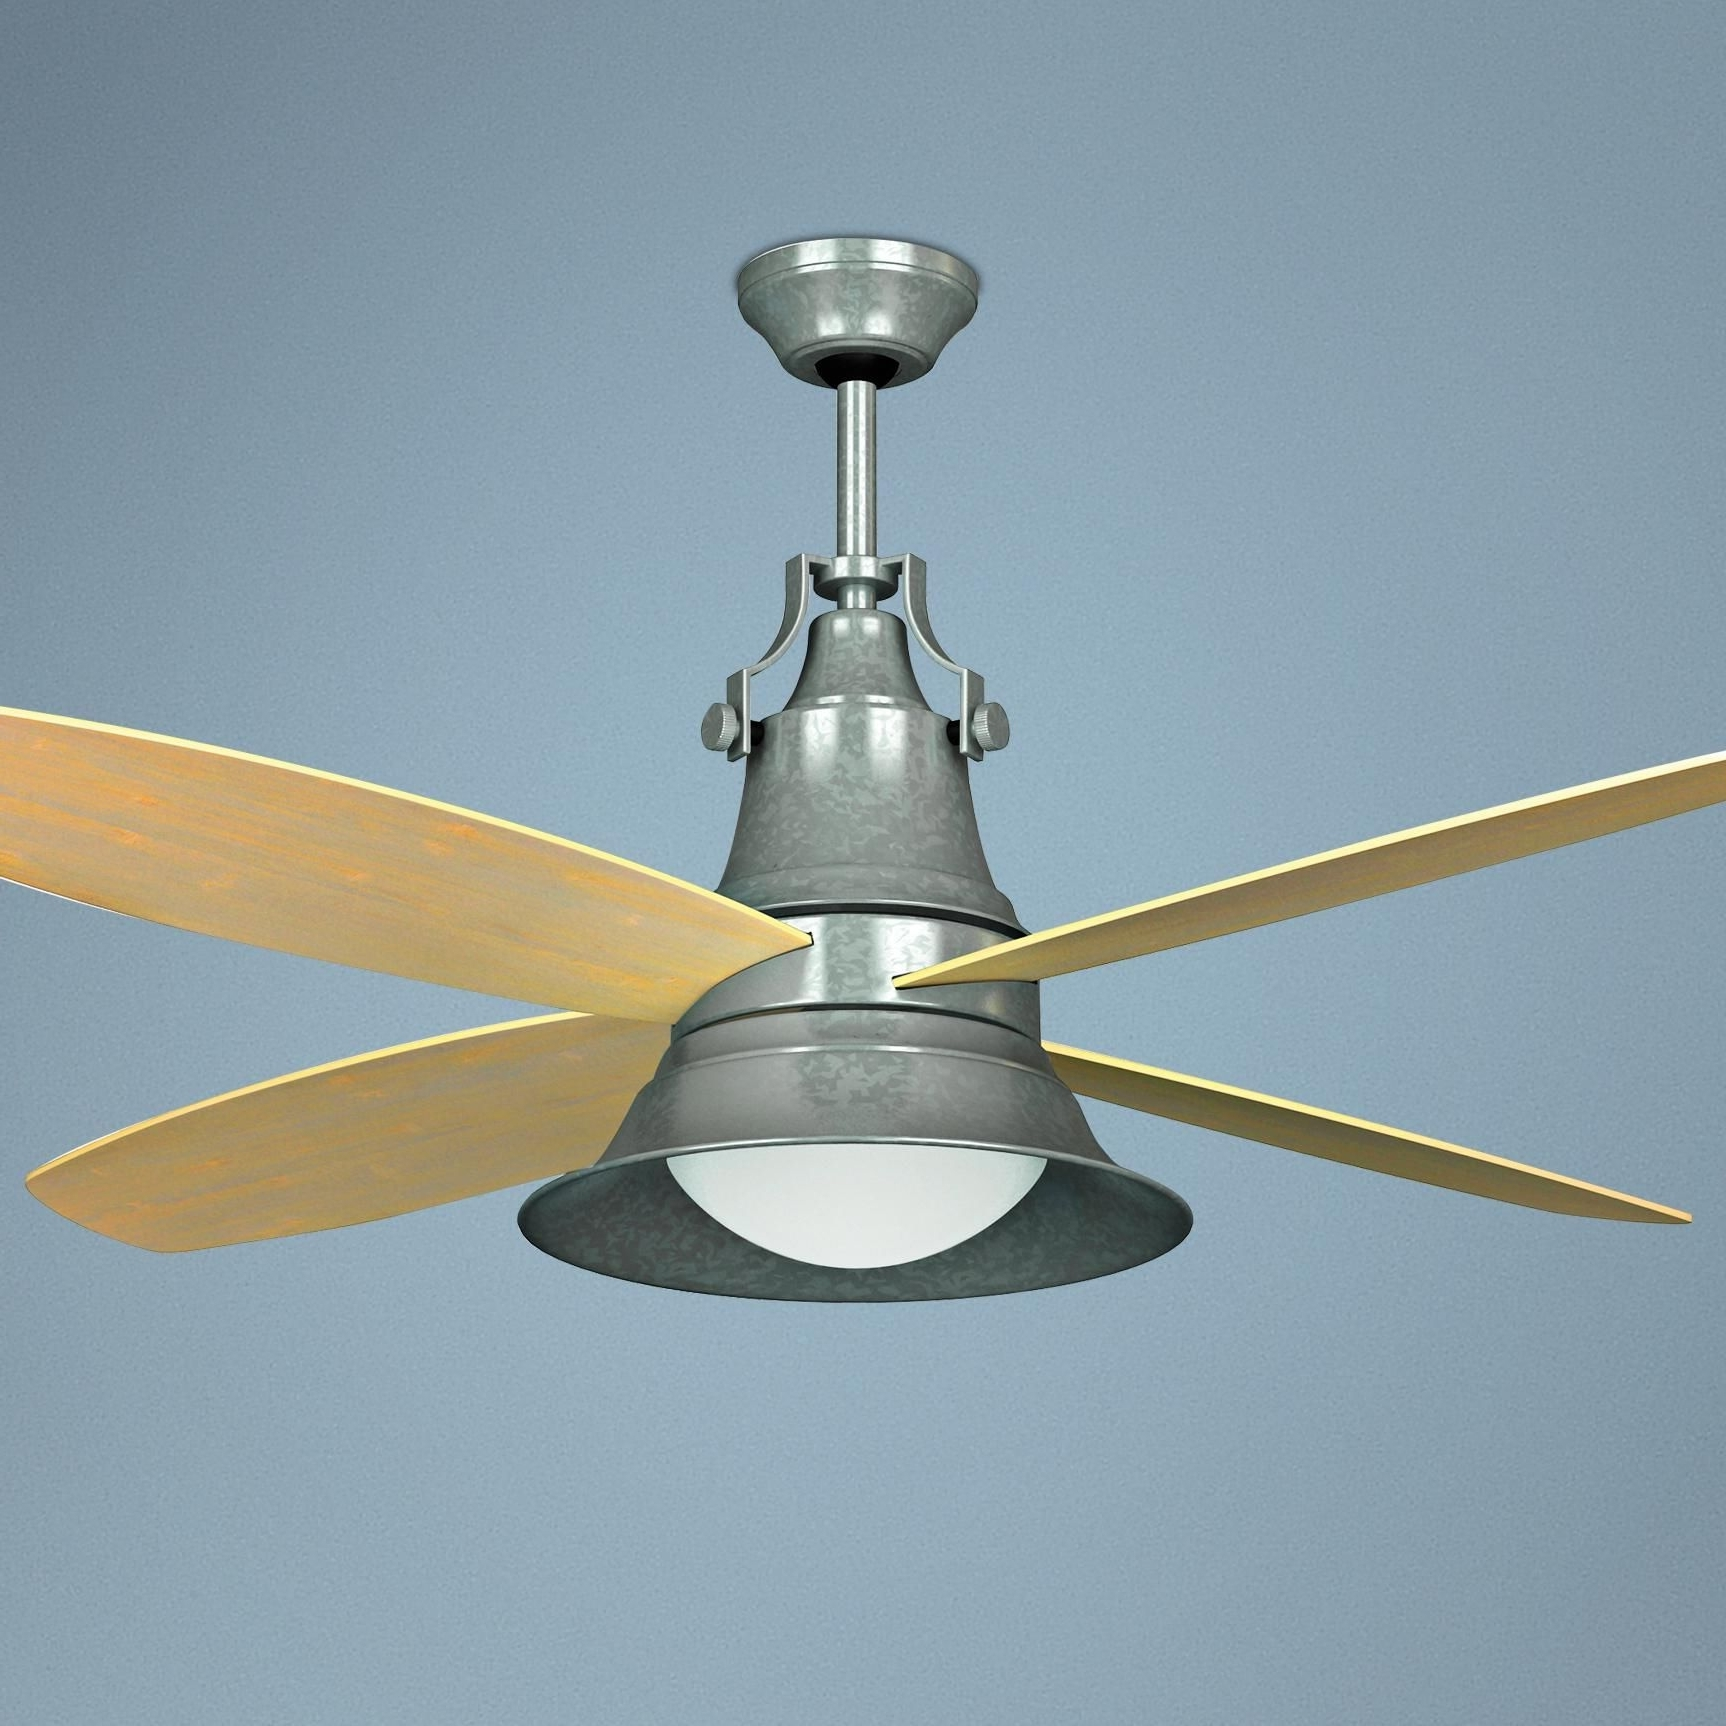 Lampsplus Intended For Most Popular Galvanized Outdoor Ceiling Fans (Gallery 20 of 20)